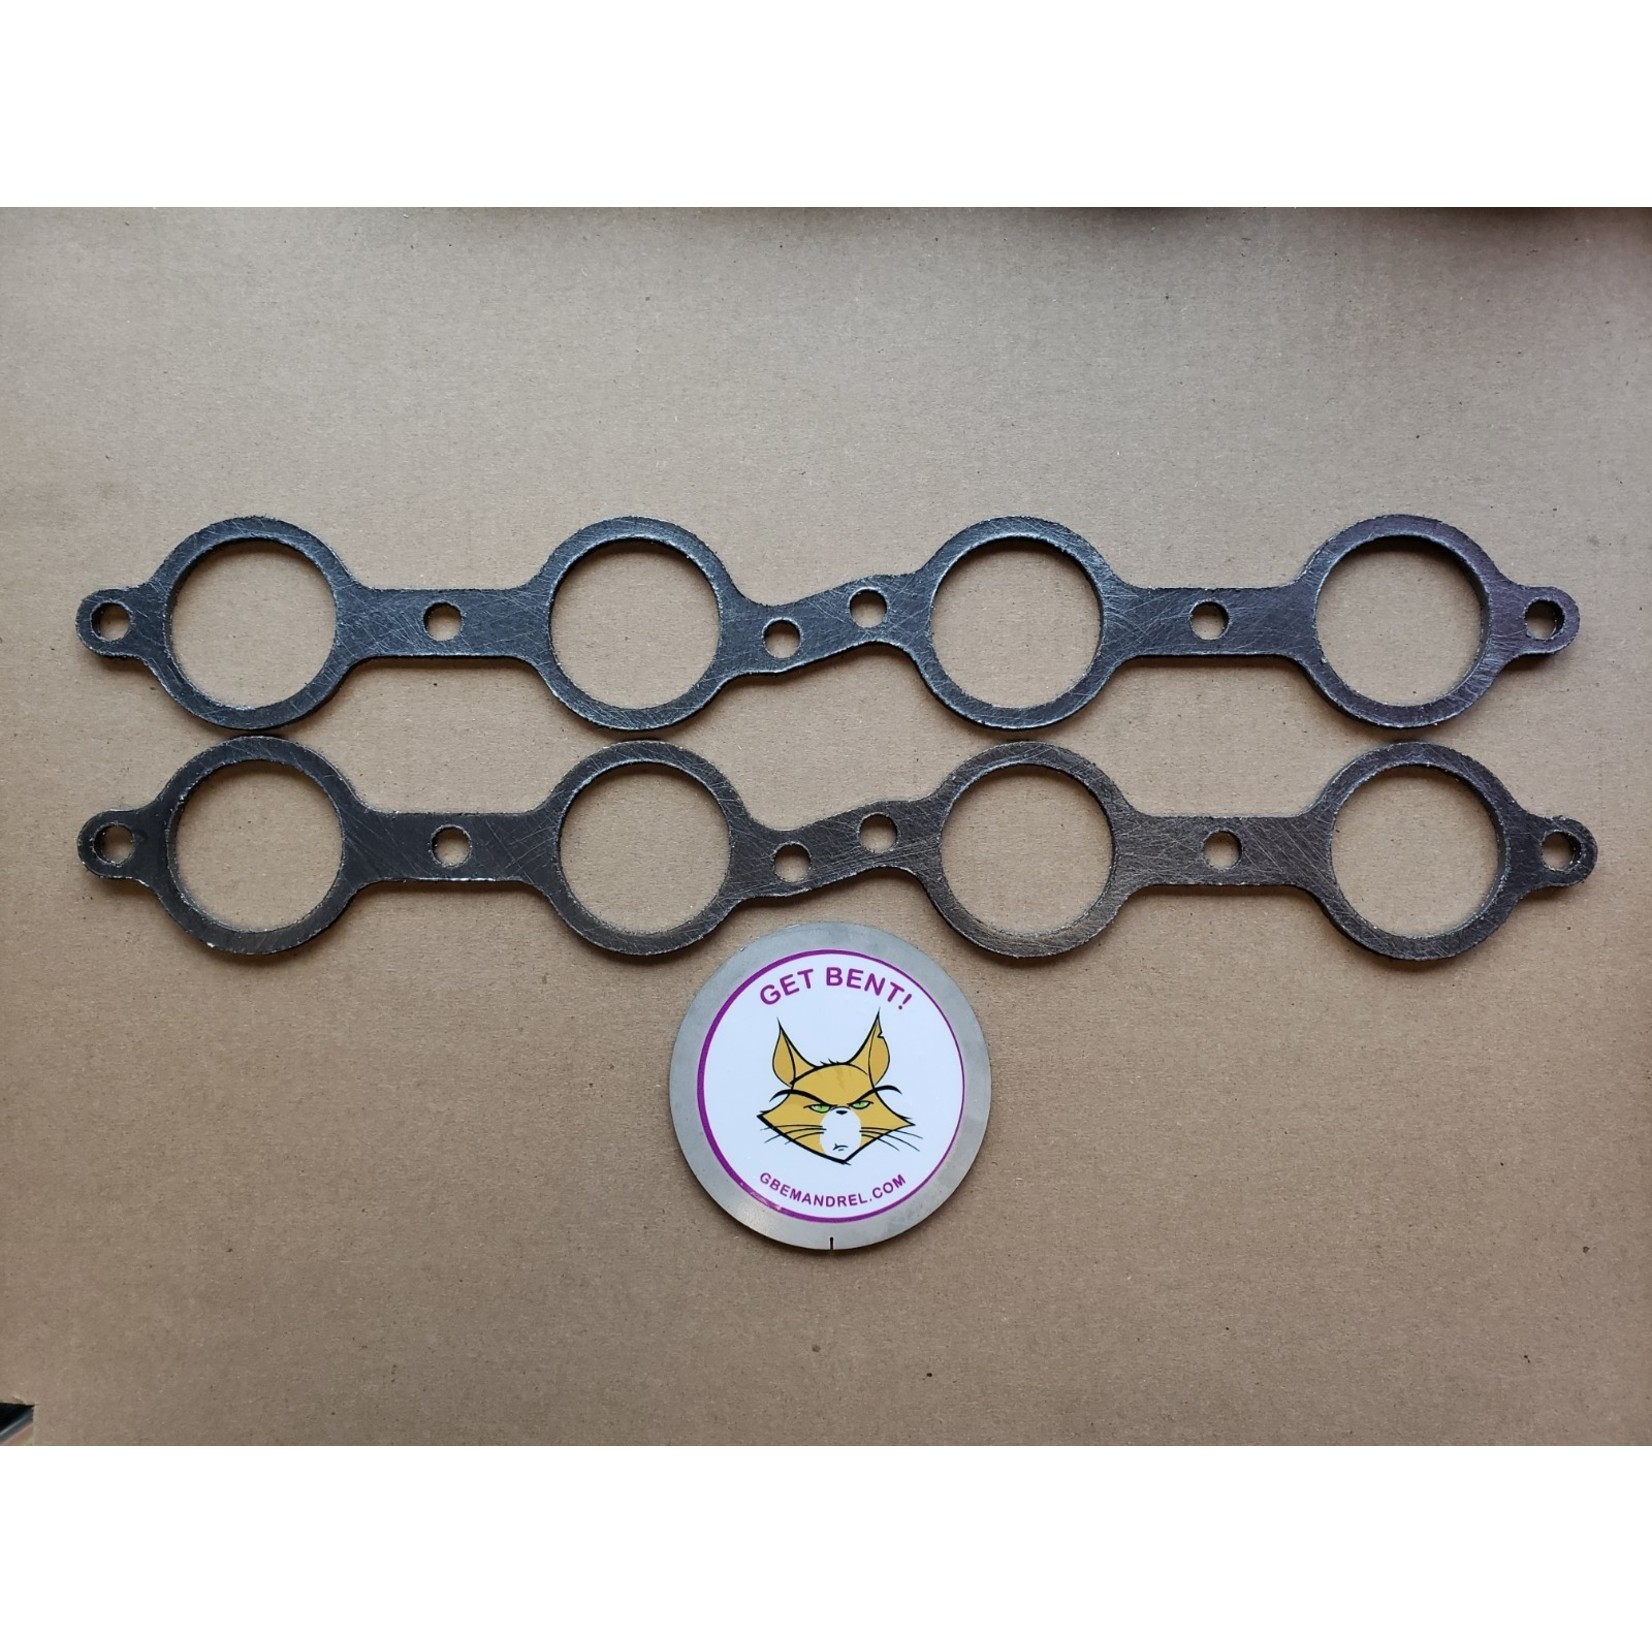 GBE GM CHEVY LS 1-7 GRAPHITE HEADER GASKETS